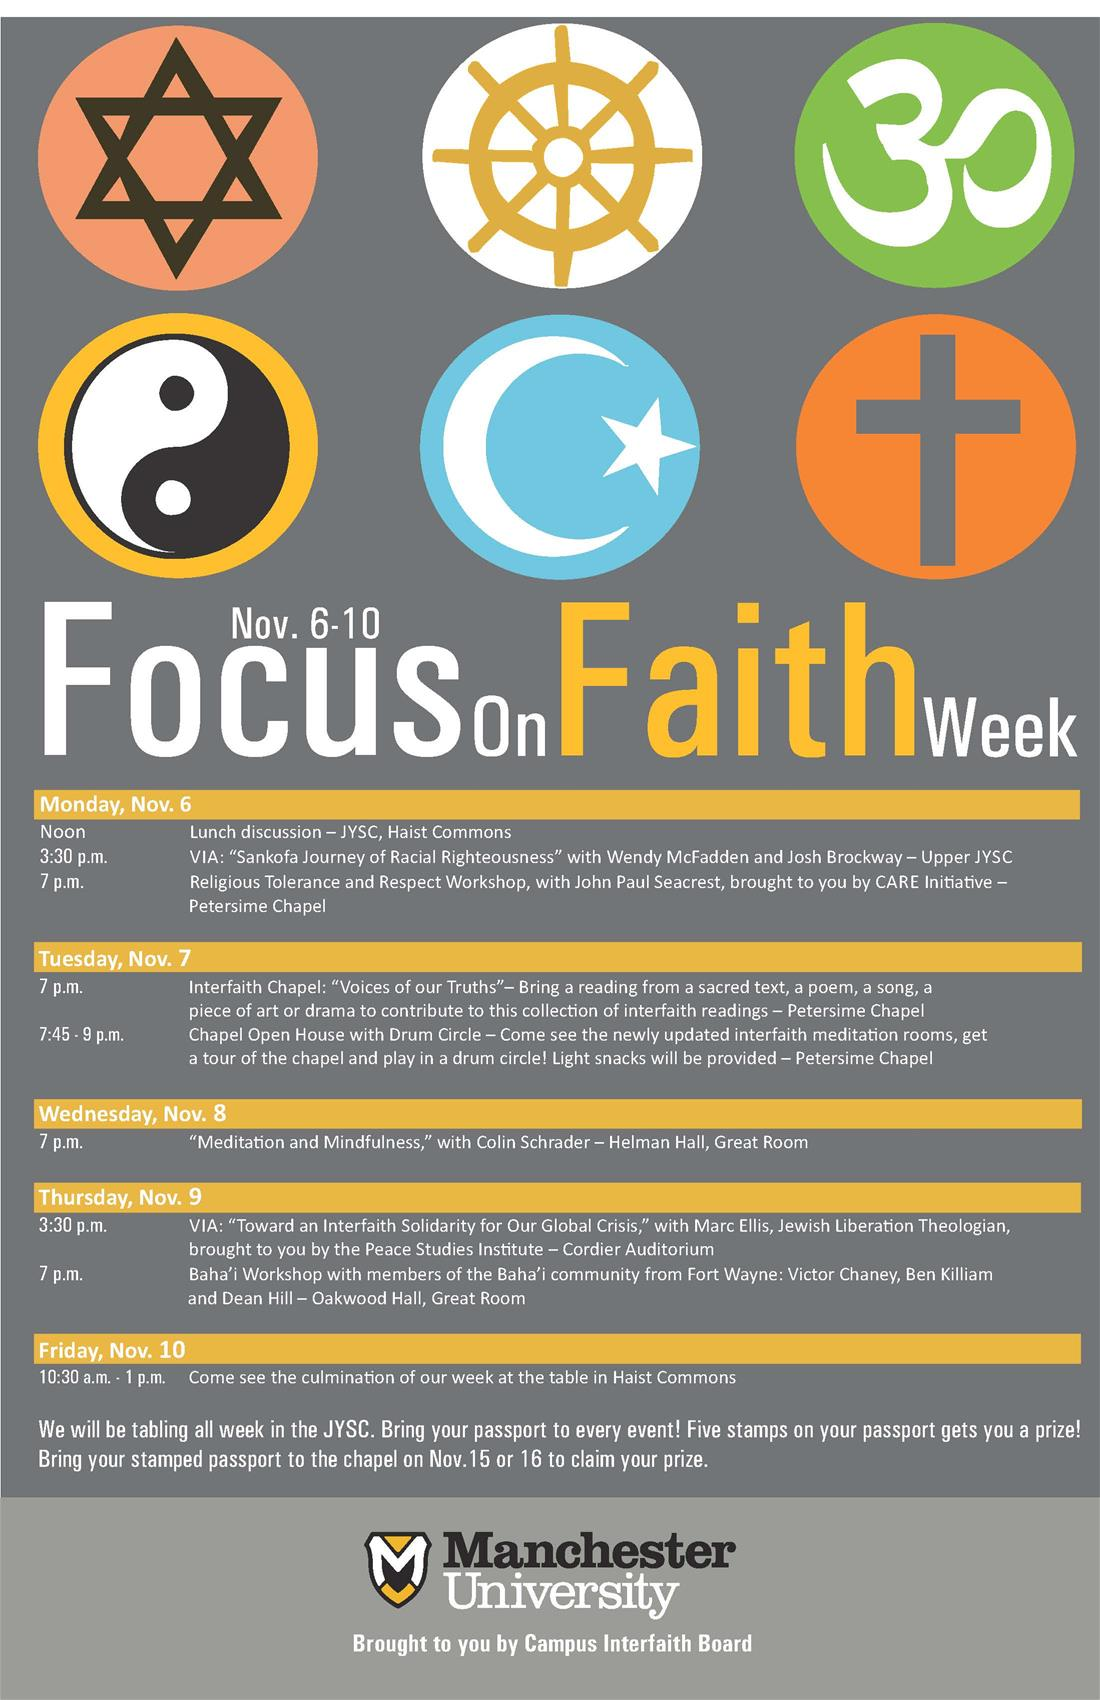 FOCUS ON FAITH WEEK 2017